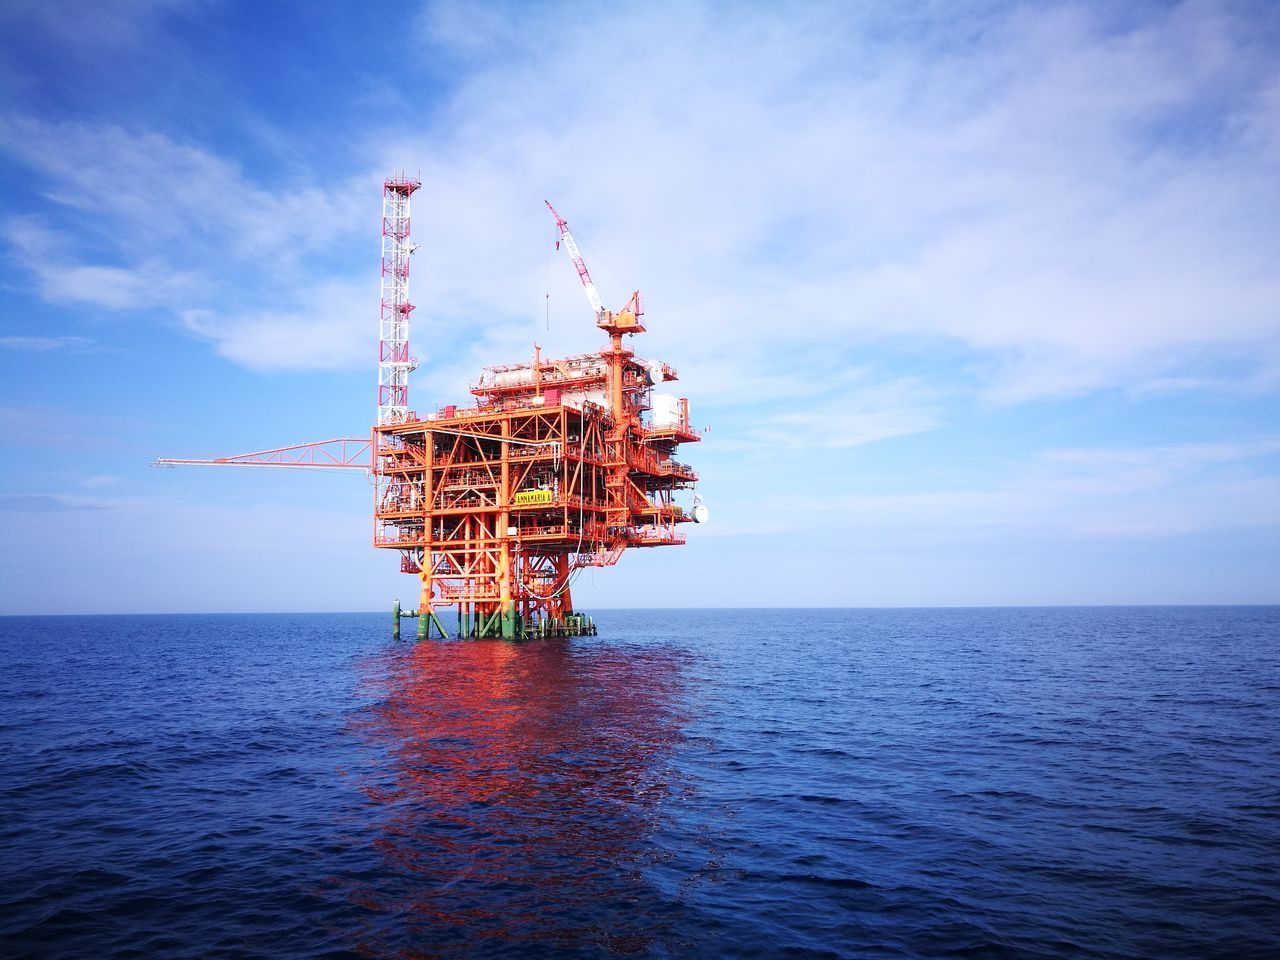 Offshore Platform Sea Oil Industry Sky Gas Outdoors Cloud - Sky No People Nature Industry Horizon Over Water Day Business Finance And Industry Oil&gas Oil&water Water Environment Fresh On Eyeem  Croatia Industry Oil Gas Adriatic Sea Fresh On Eyeem  FreshonEyeem